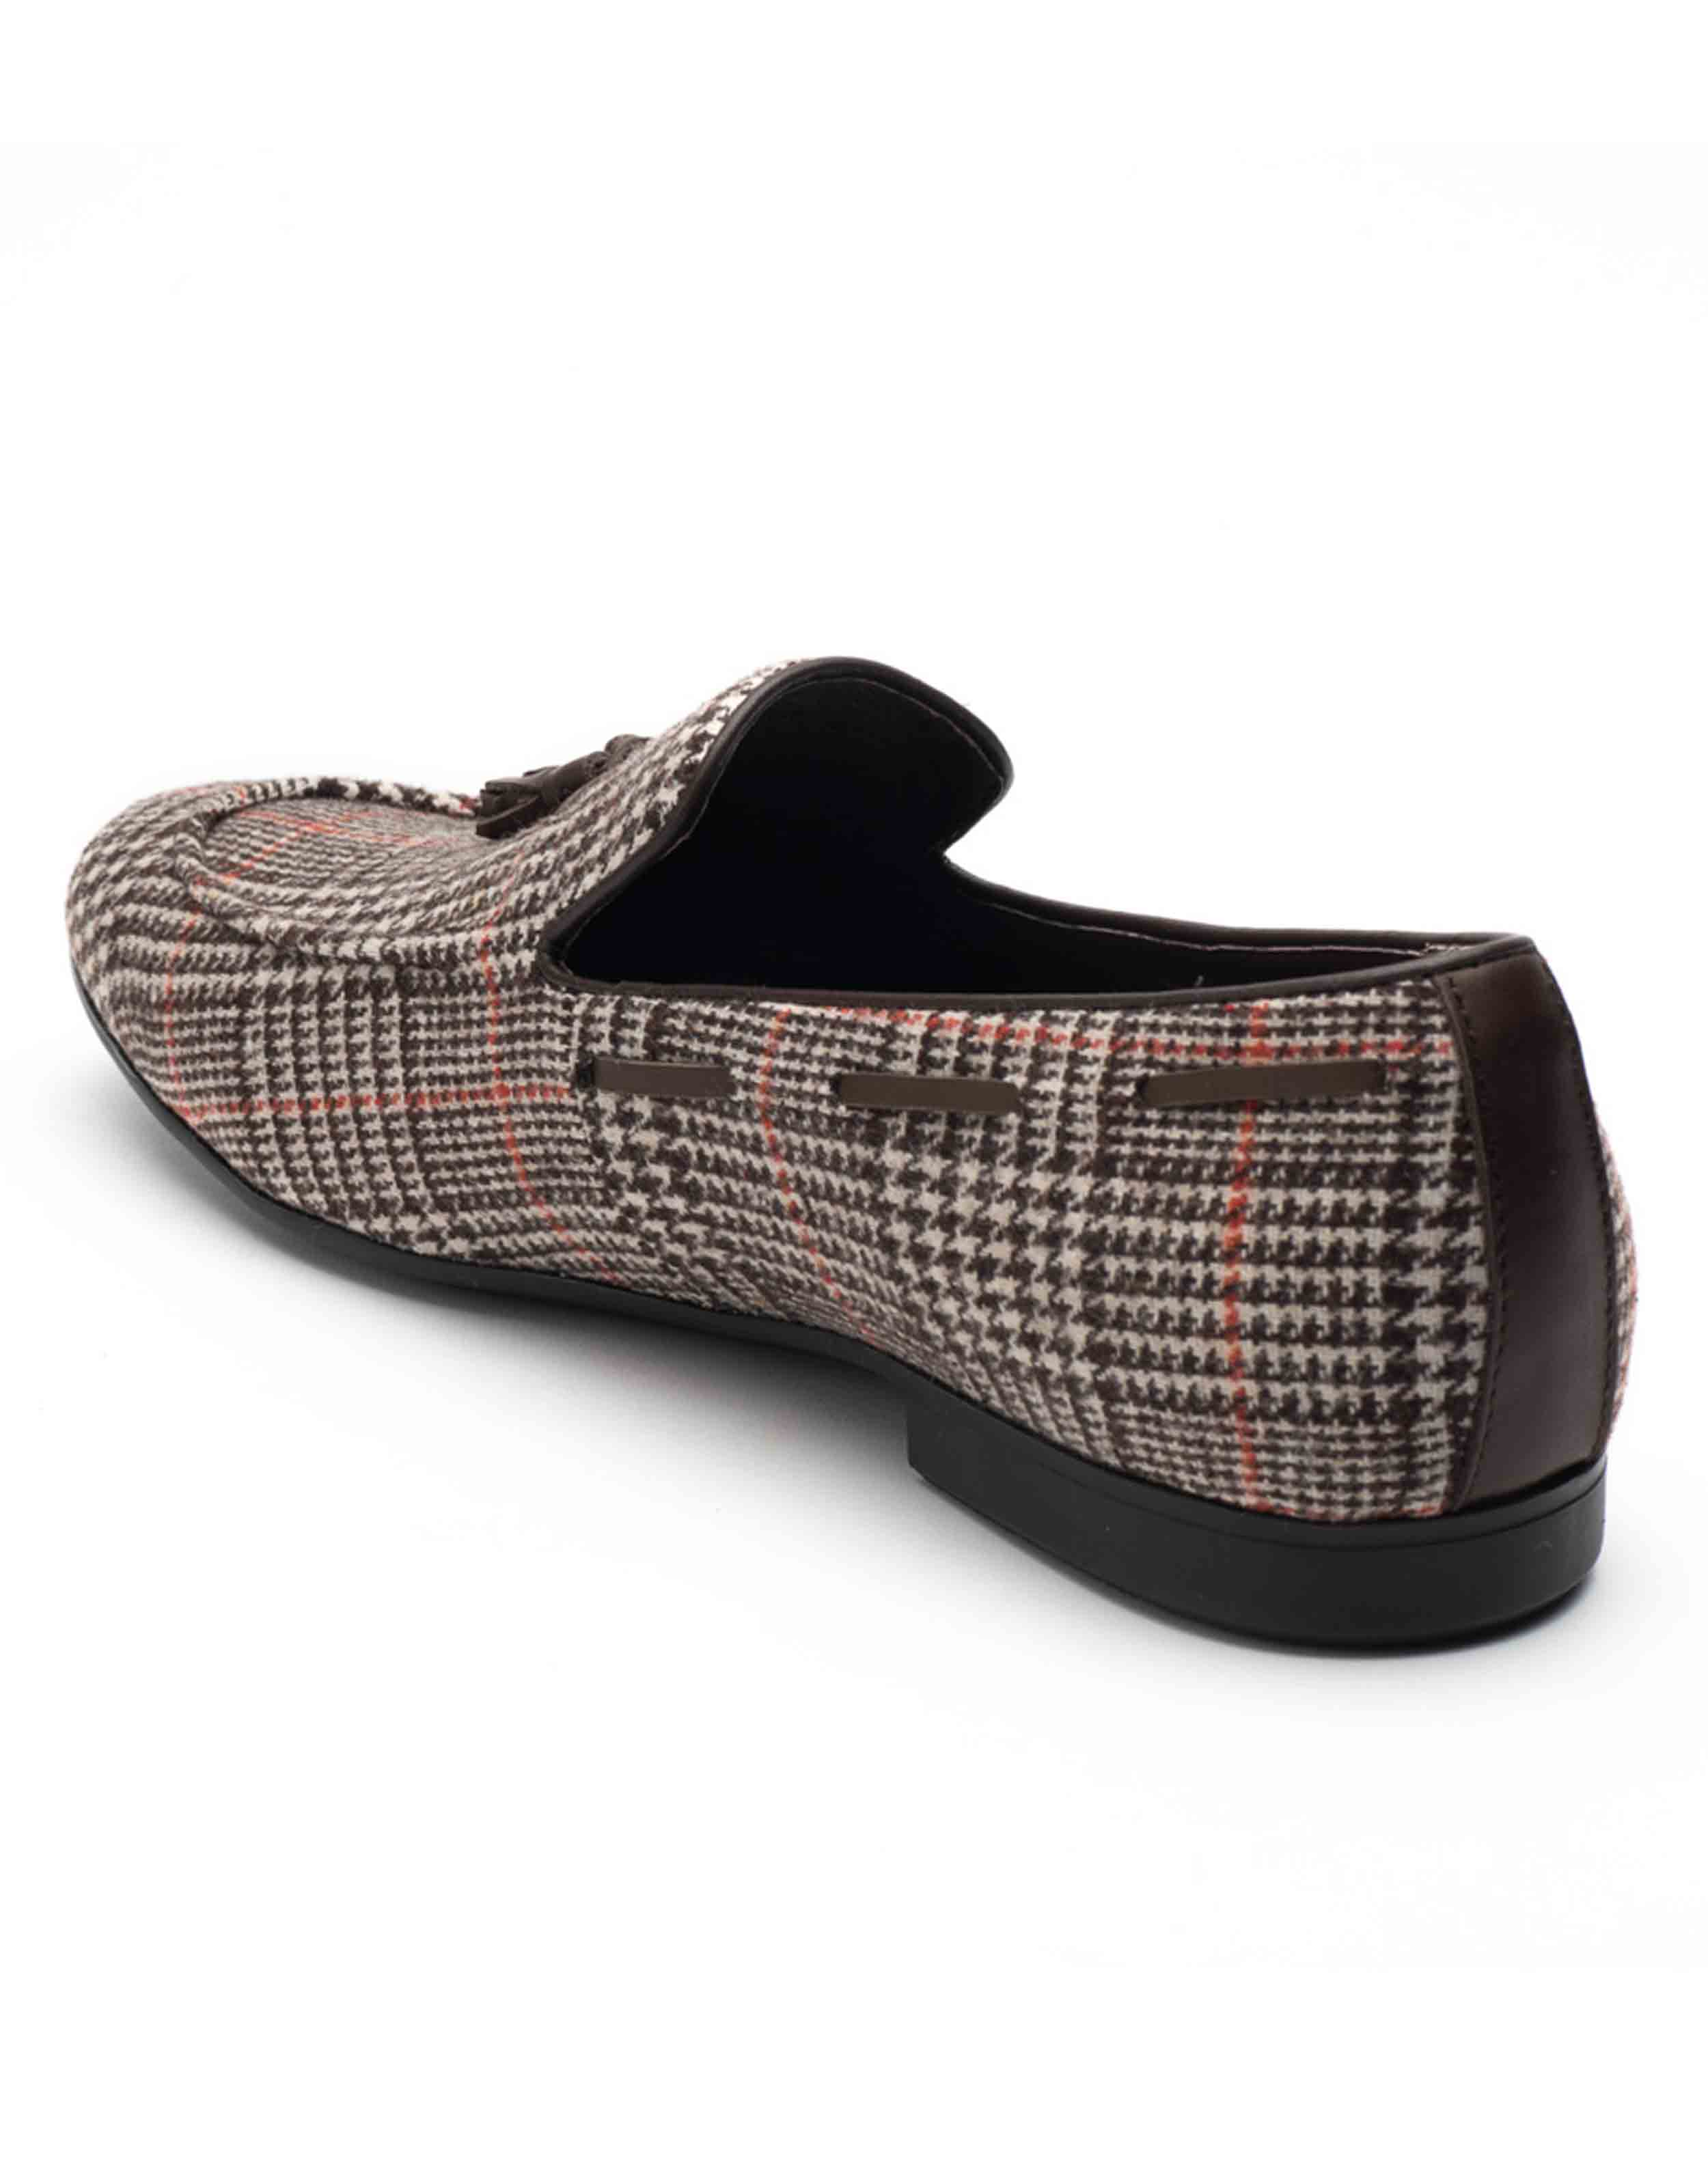 Heel _ Buckle London-HBDARM101-Checkered Brown Tassel Loafers-3